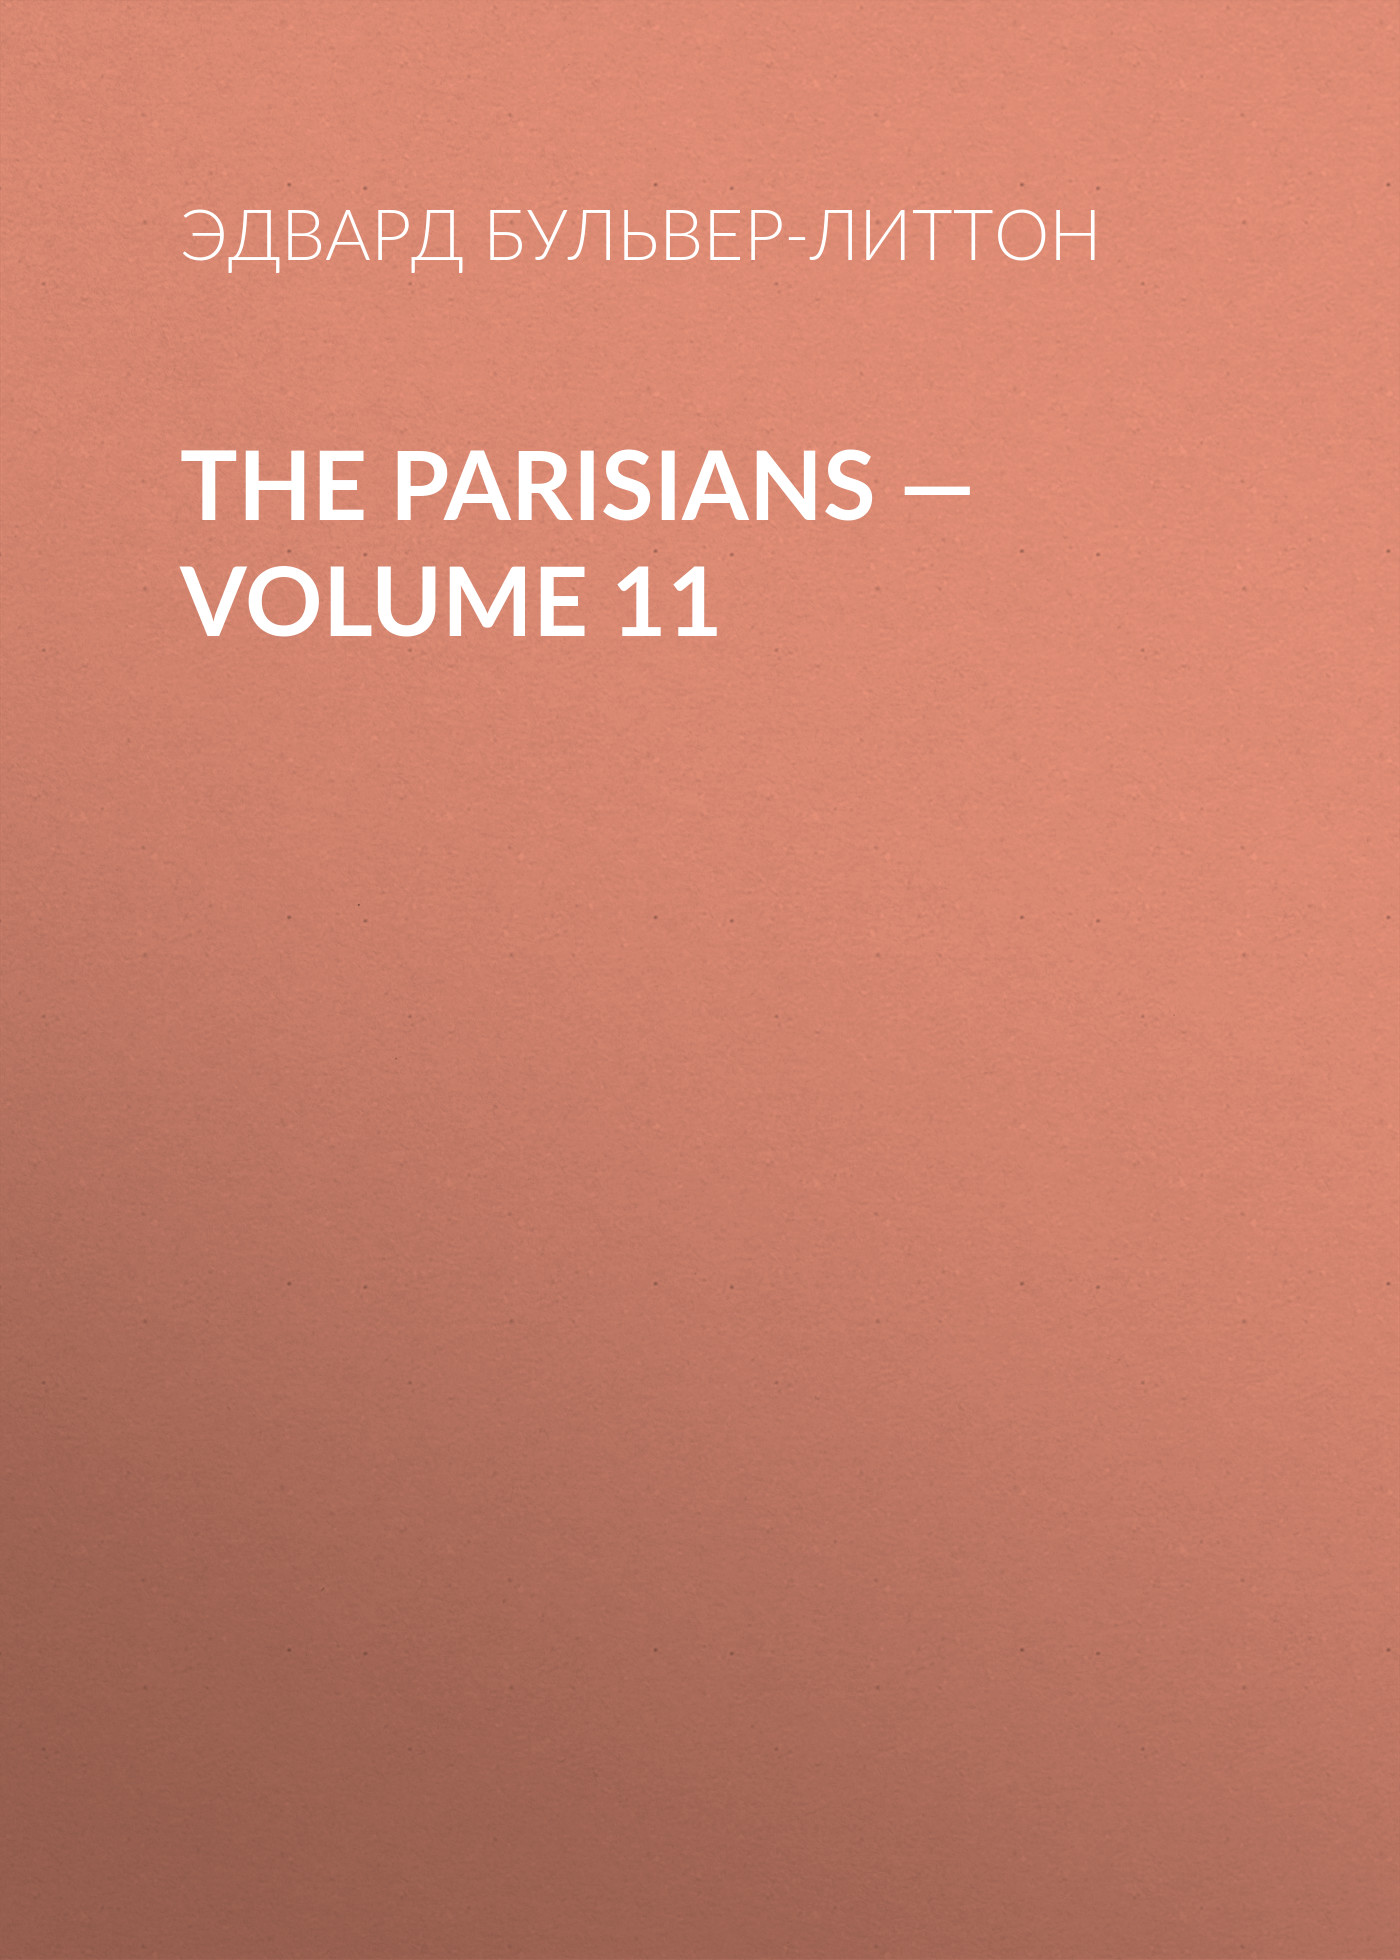 The Parisians — Volume 11